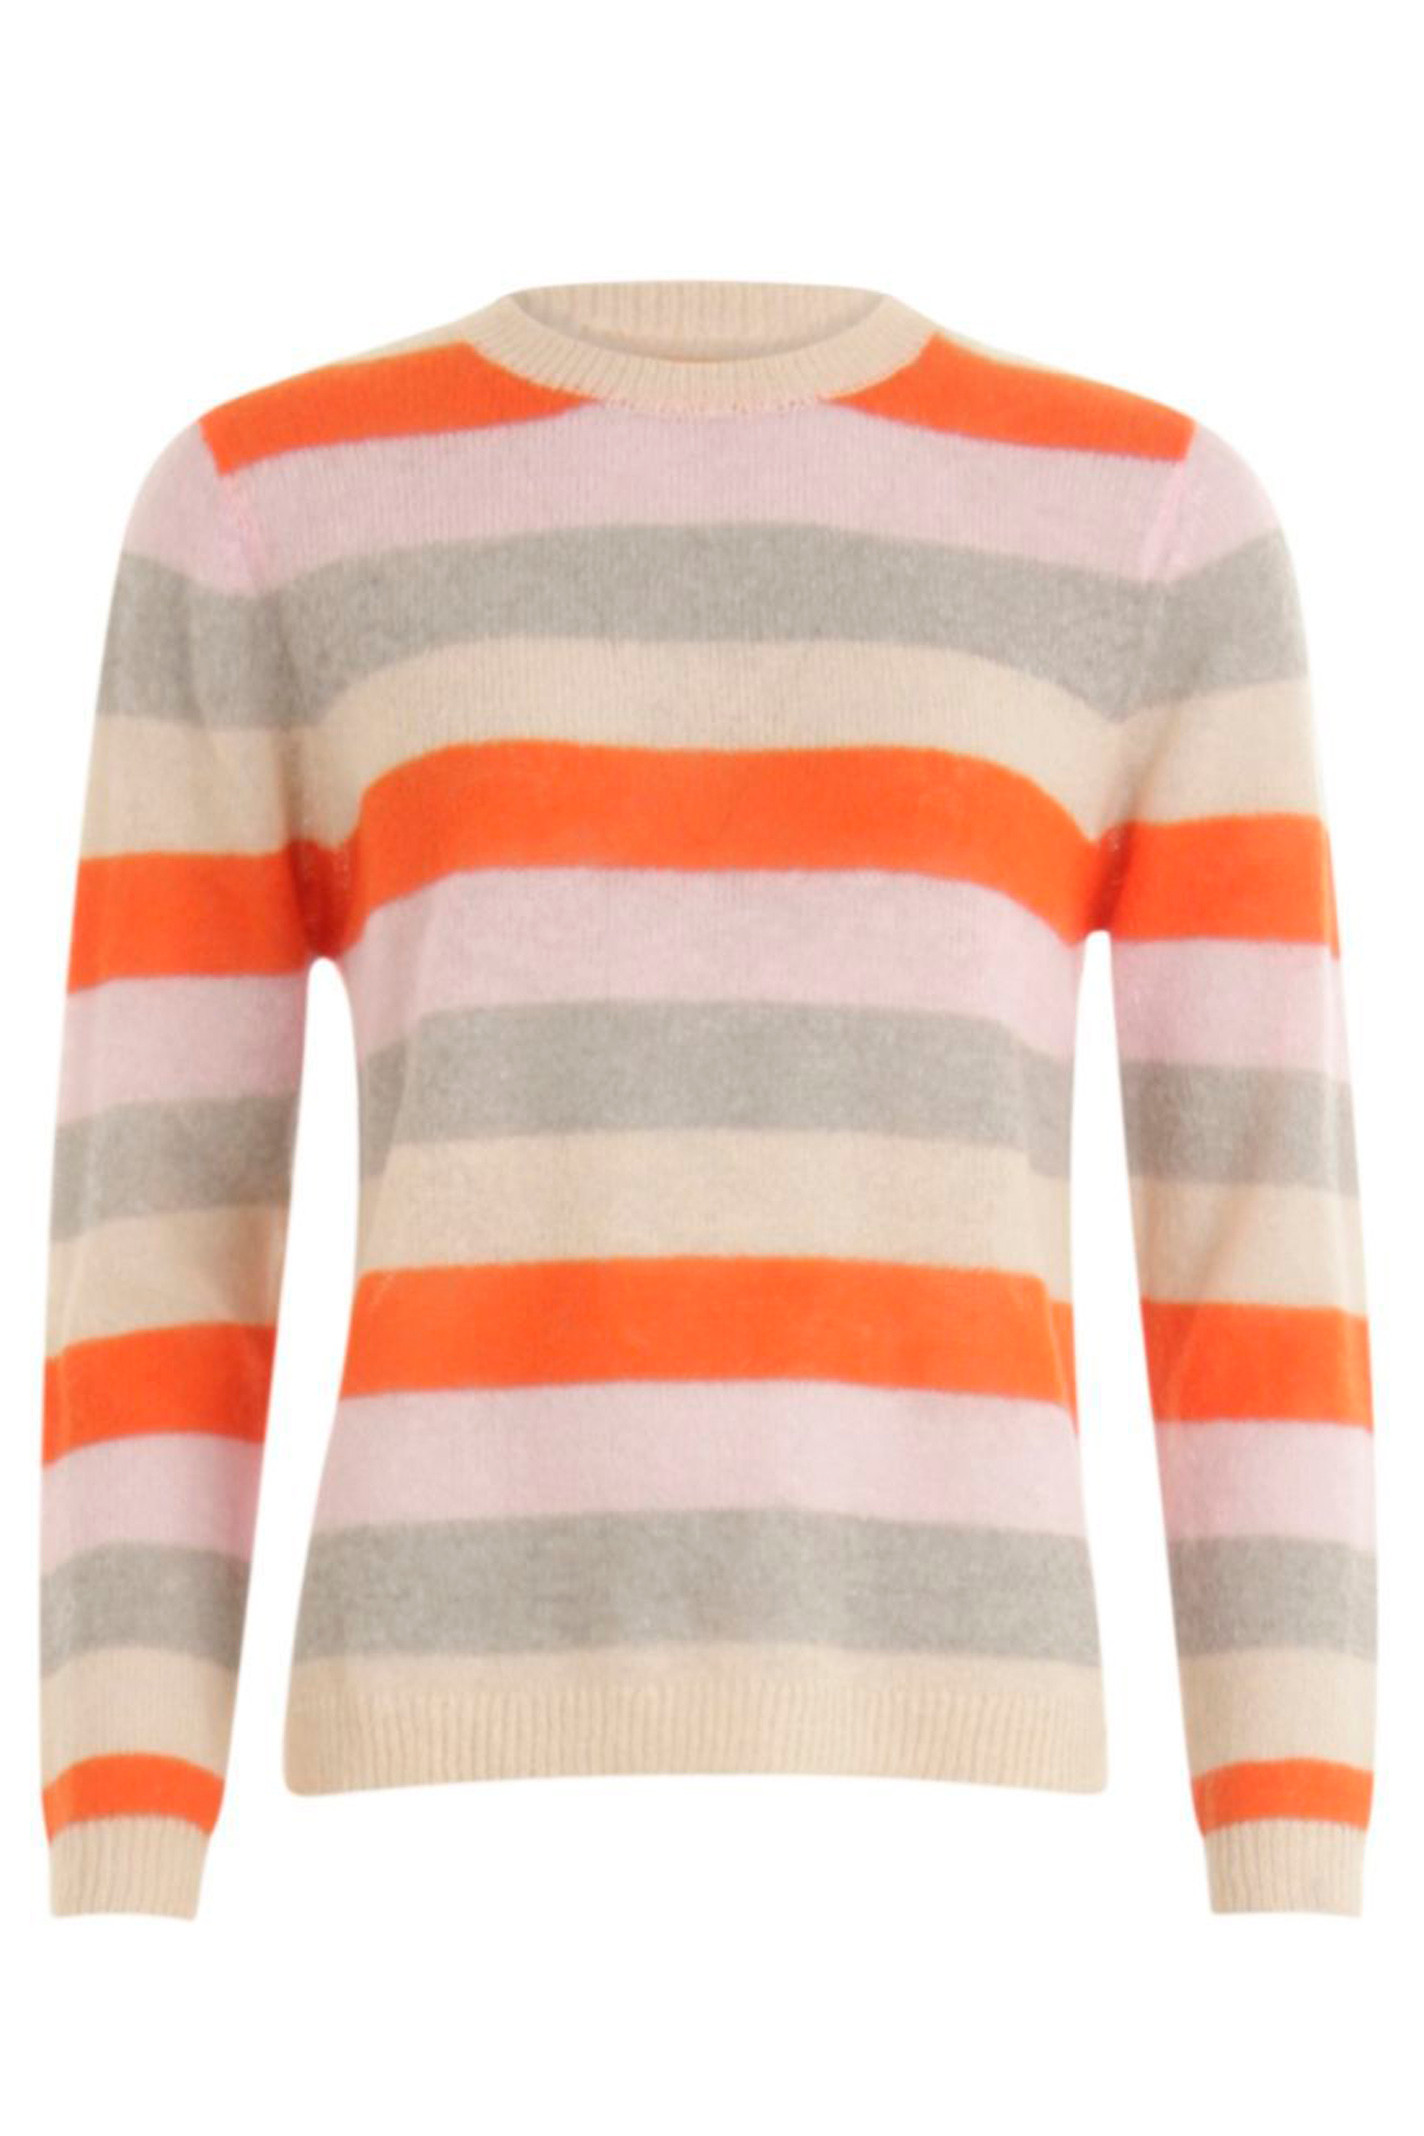 Coster Copenhagen 186-2111 ORANGE